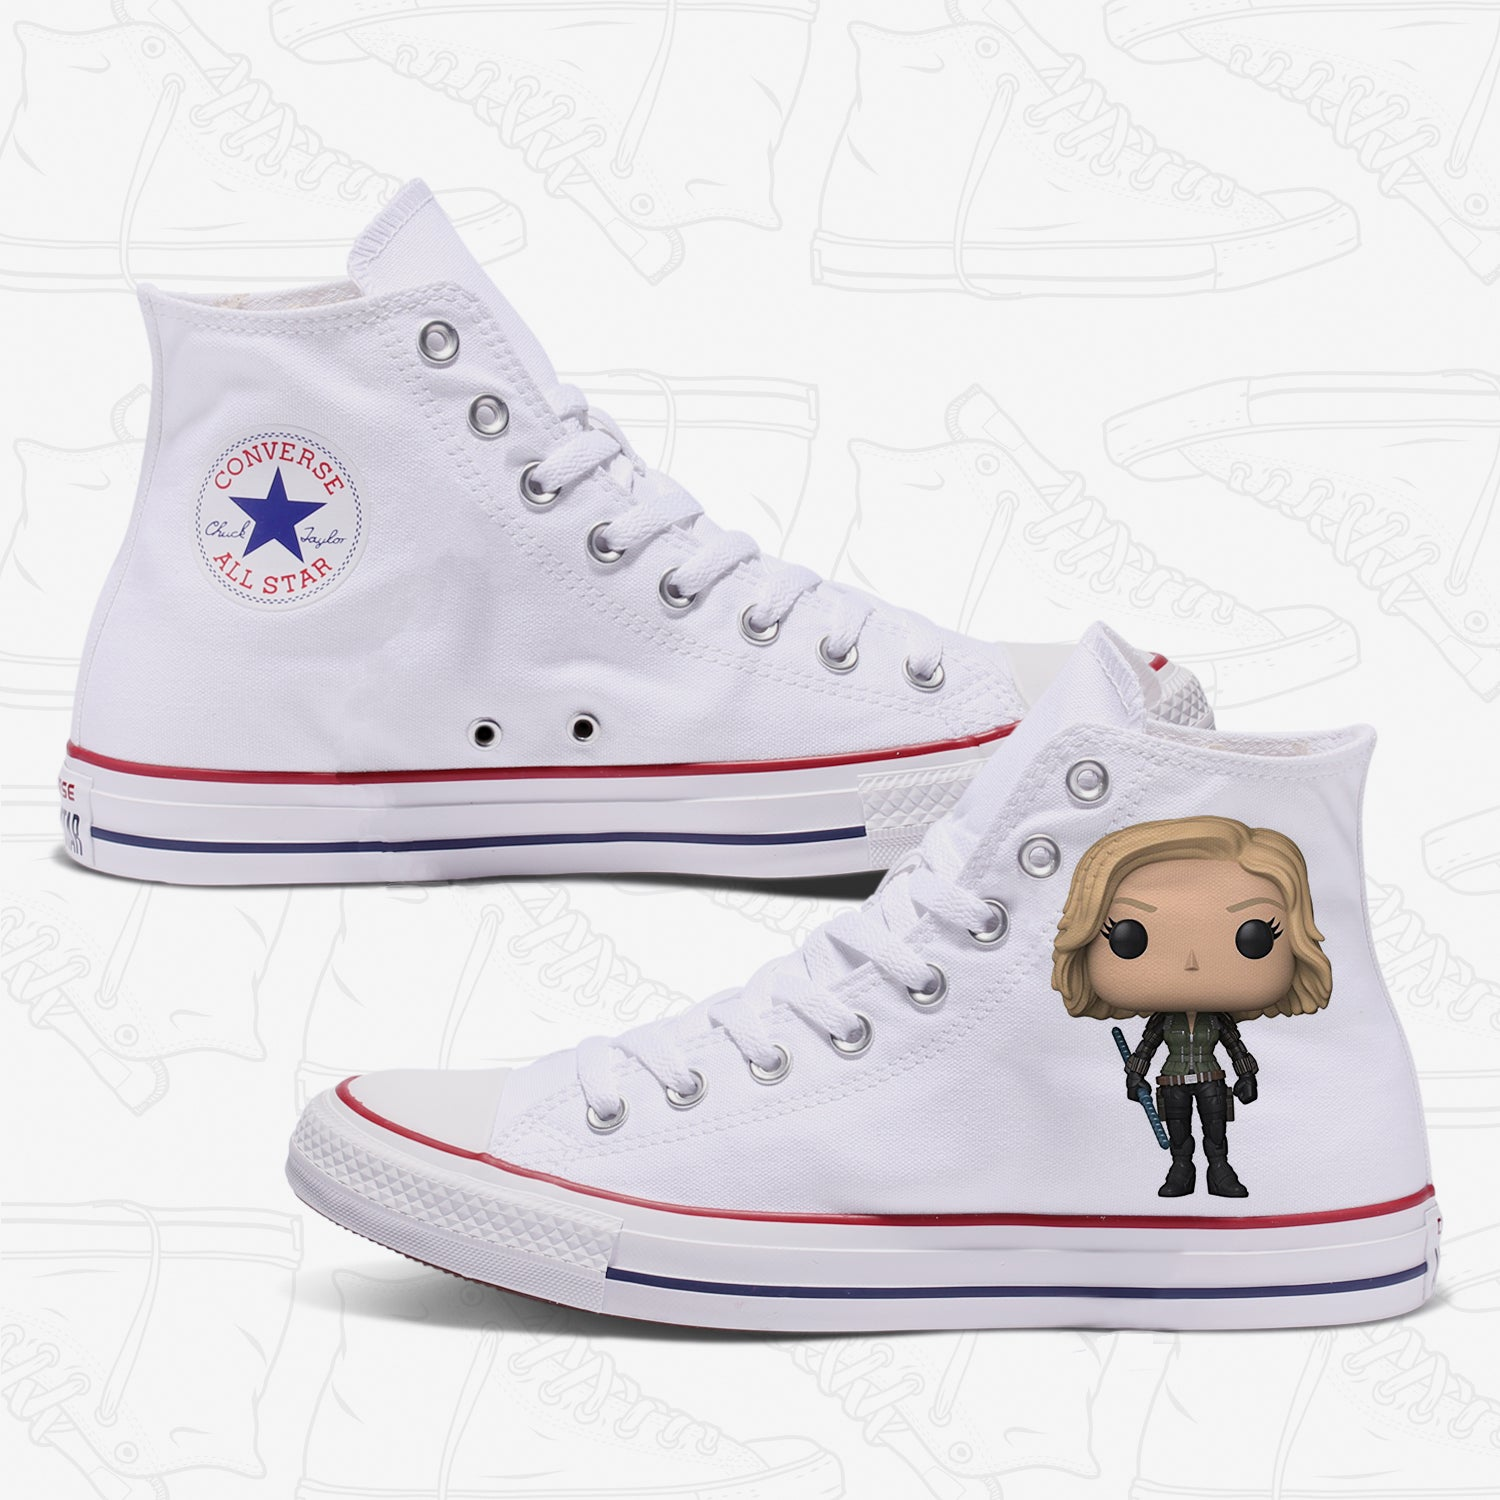 Black Widow Adult Converse Shoes